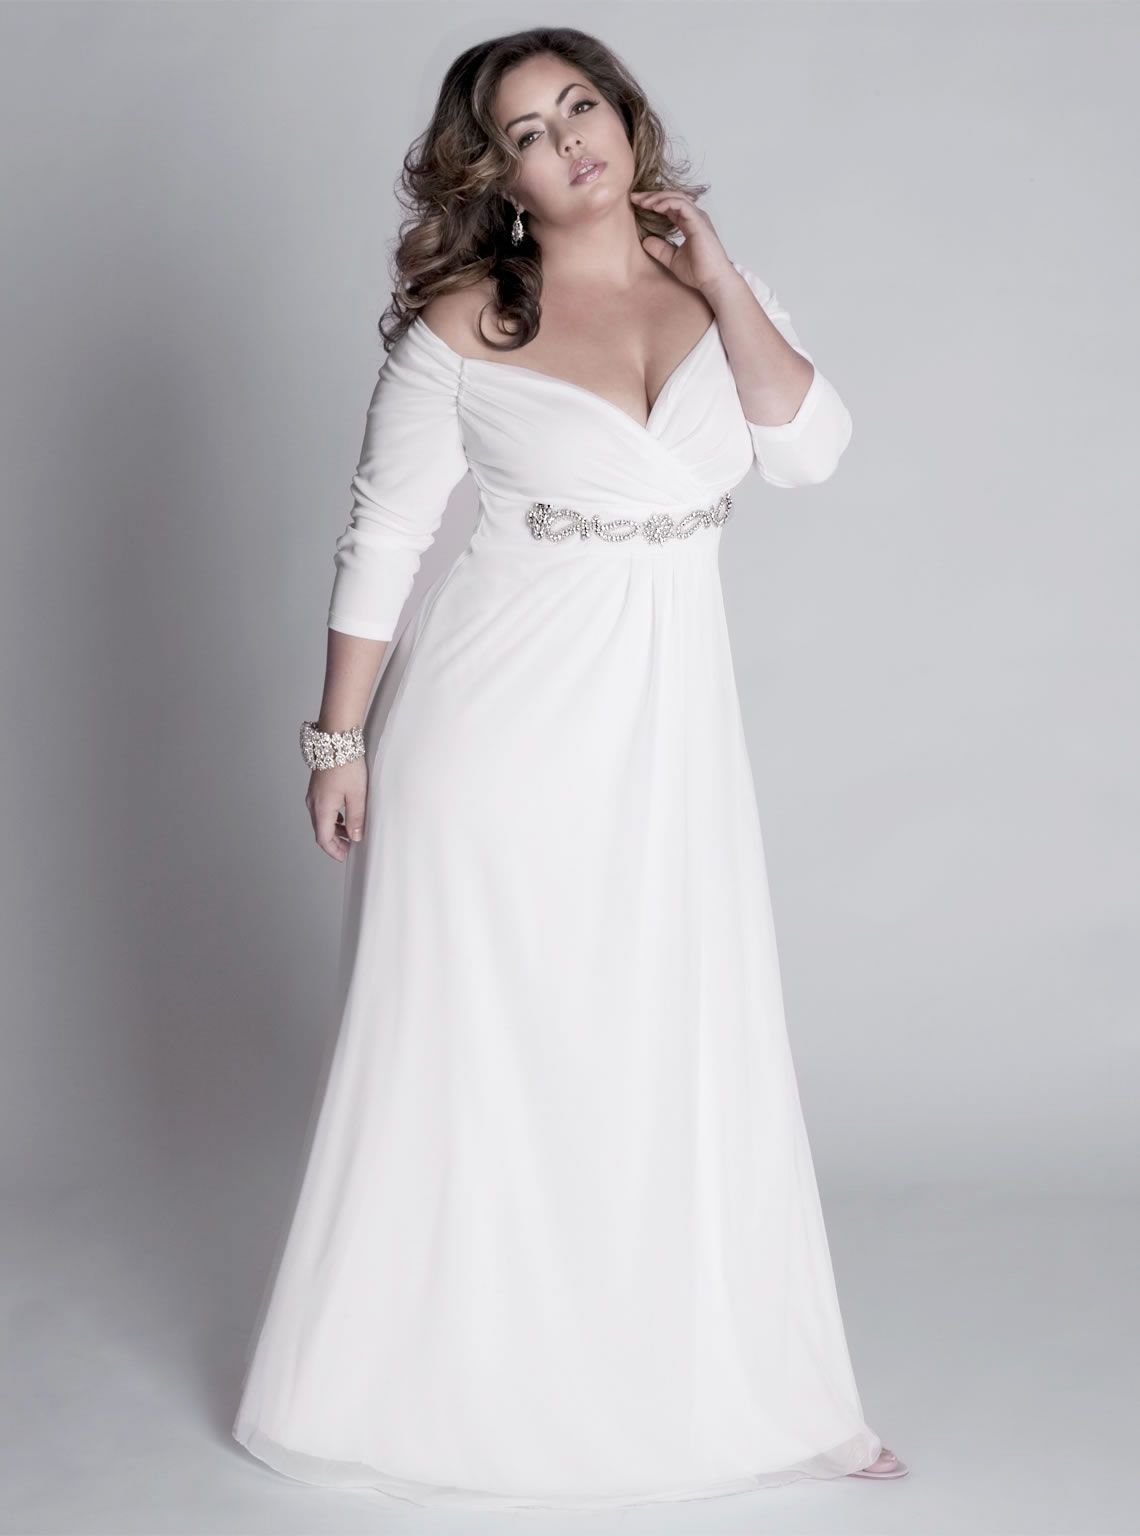 2019 Casual Wedding Dresses with Sleeves - Best Shapewear for ...